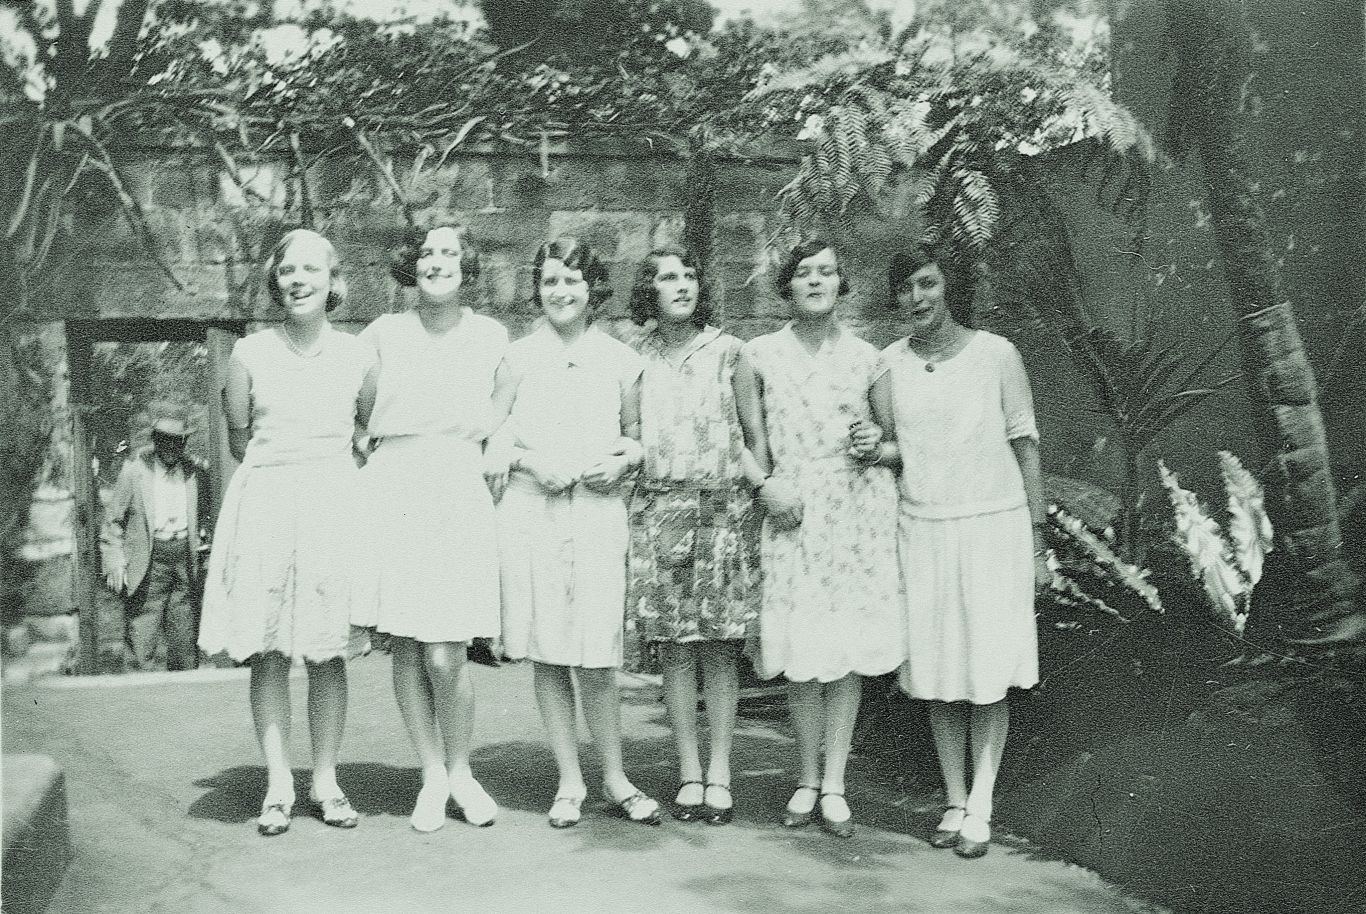 A group portrait of 6 women standing in front of a stone wall with shrubs growing over it. The women have linked arms and are all smiling at the camera.